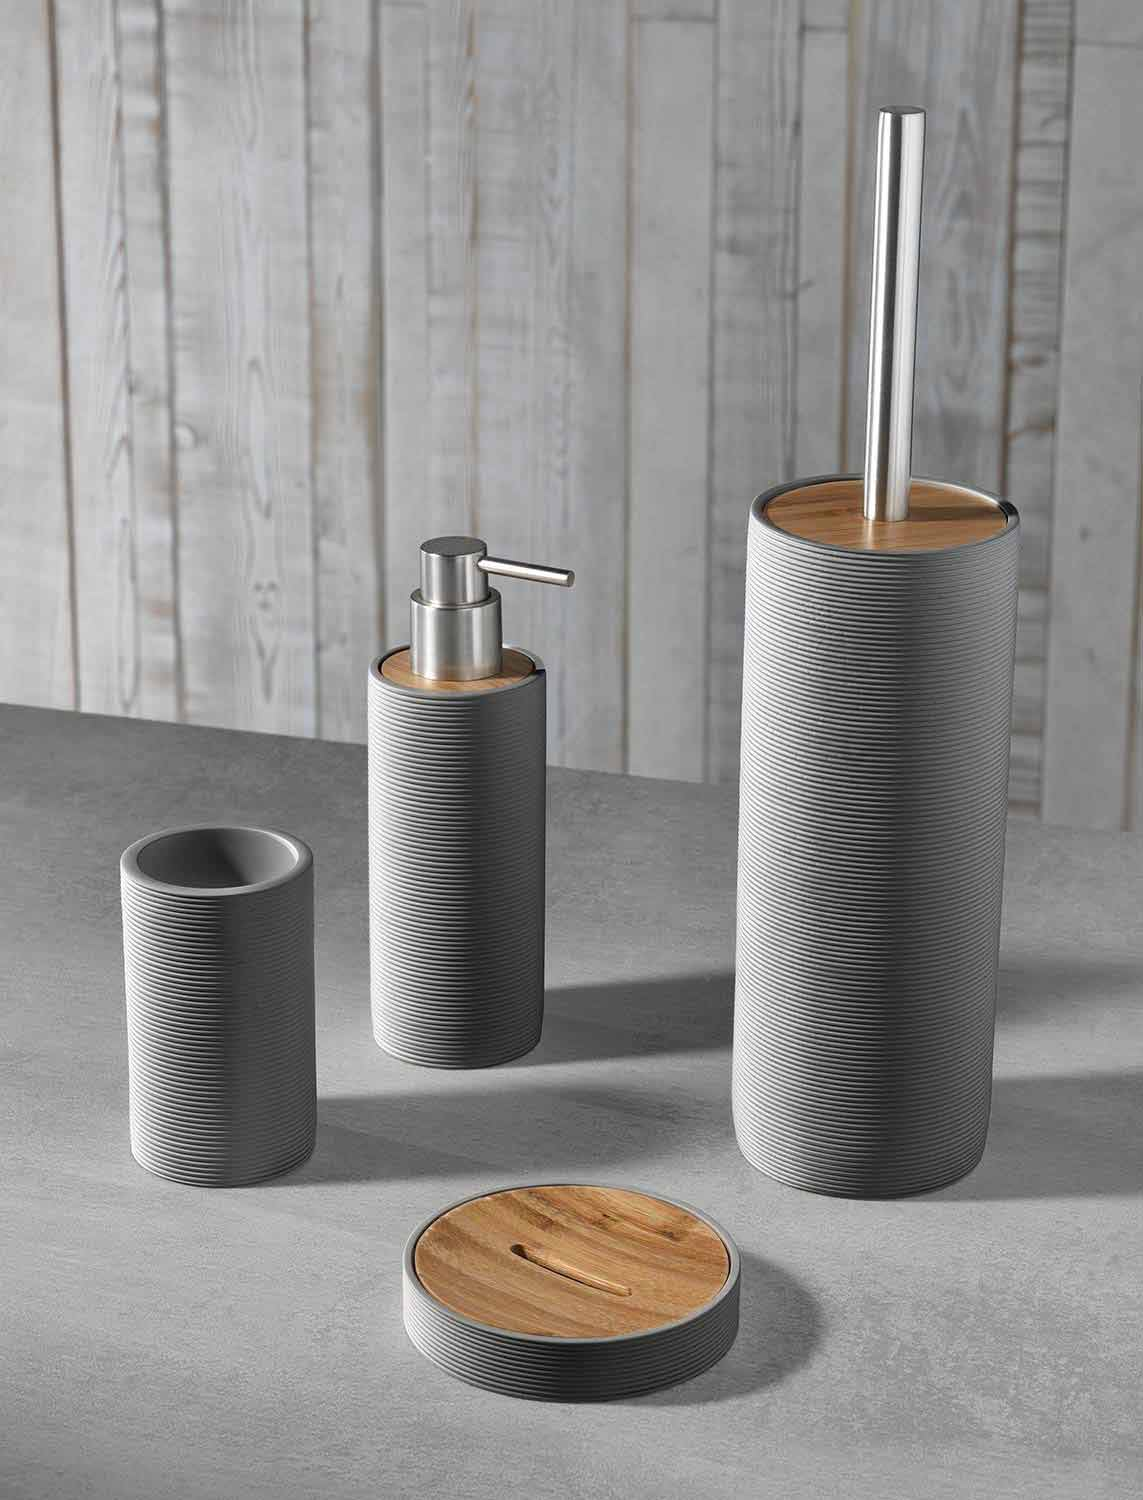 Set of Modern Design Bathroom Accessories in White or Gray ...